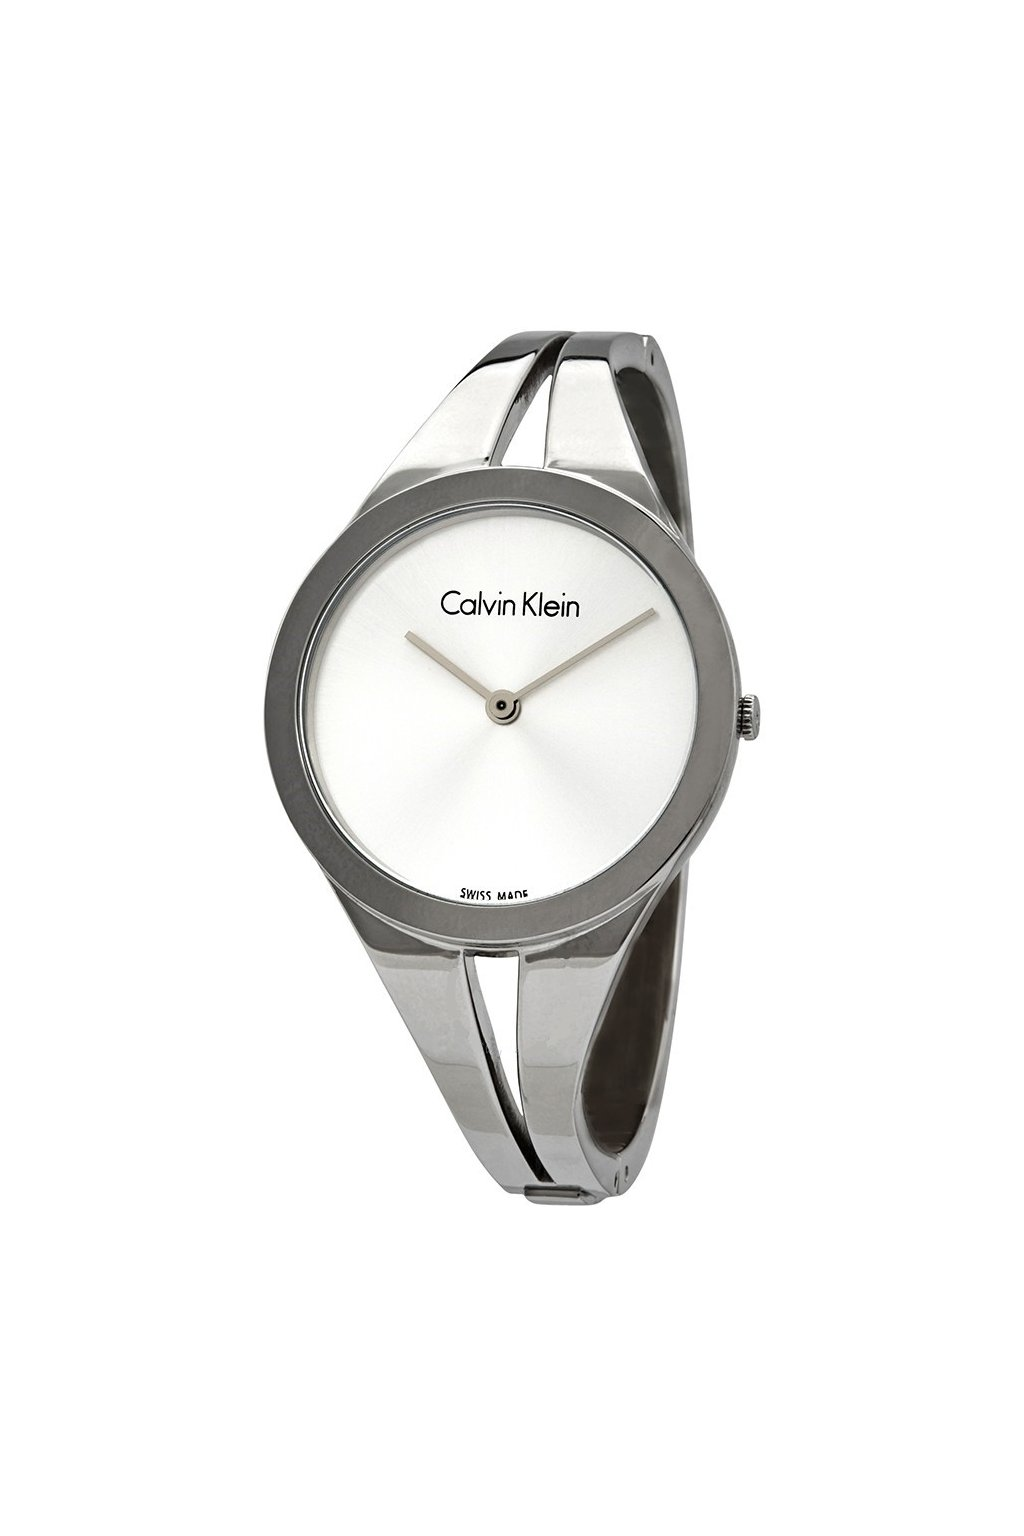 calvin klein addict silver dial ladies small bangle watch k7w2s116